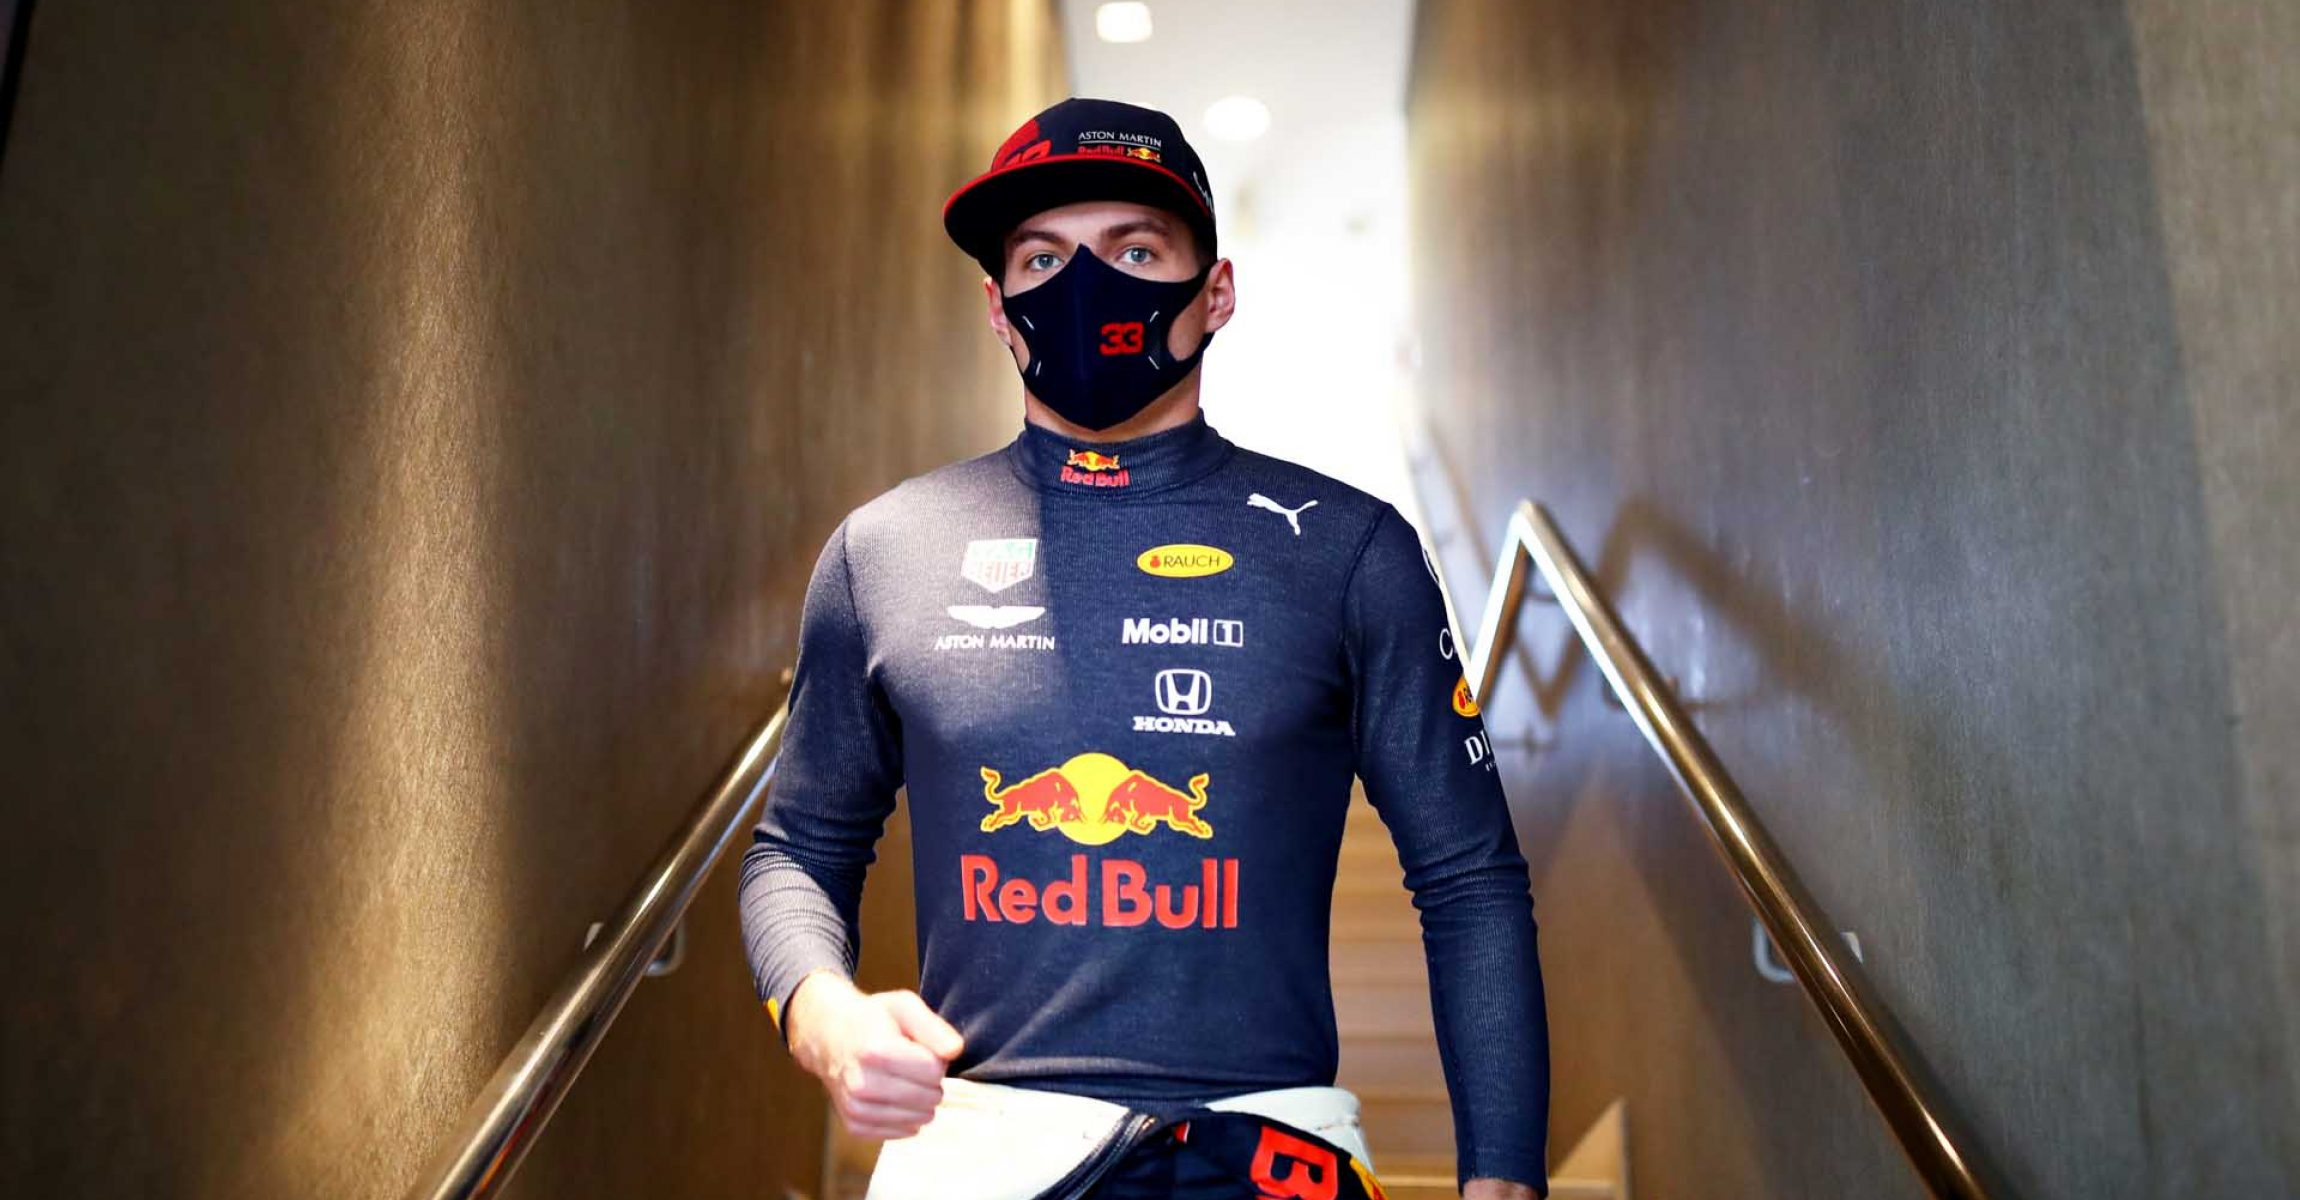 ABU DHABI, UNITED ARAB EMIRATES - DECEMBER 11: Max Verstappen of Netherlands and Red Bull Racing walks to the garage before practice ahead of the F1 Grand Prix of Abu Dhabi at Yas Marina Circuit on December 11, 2020 in Abu Dhabi, United Arab Emirates. (Photo by Mark Thompson/Getty Images)